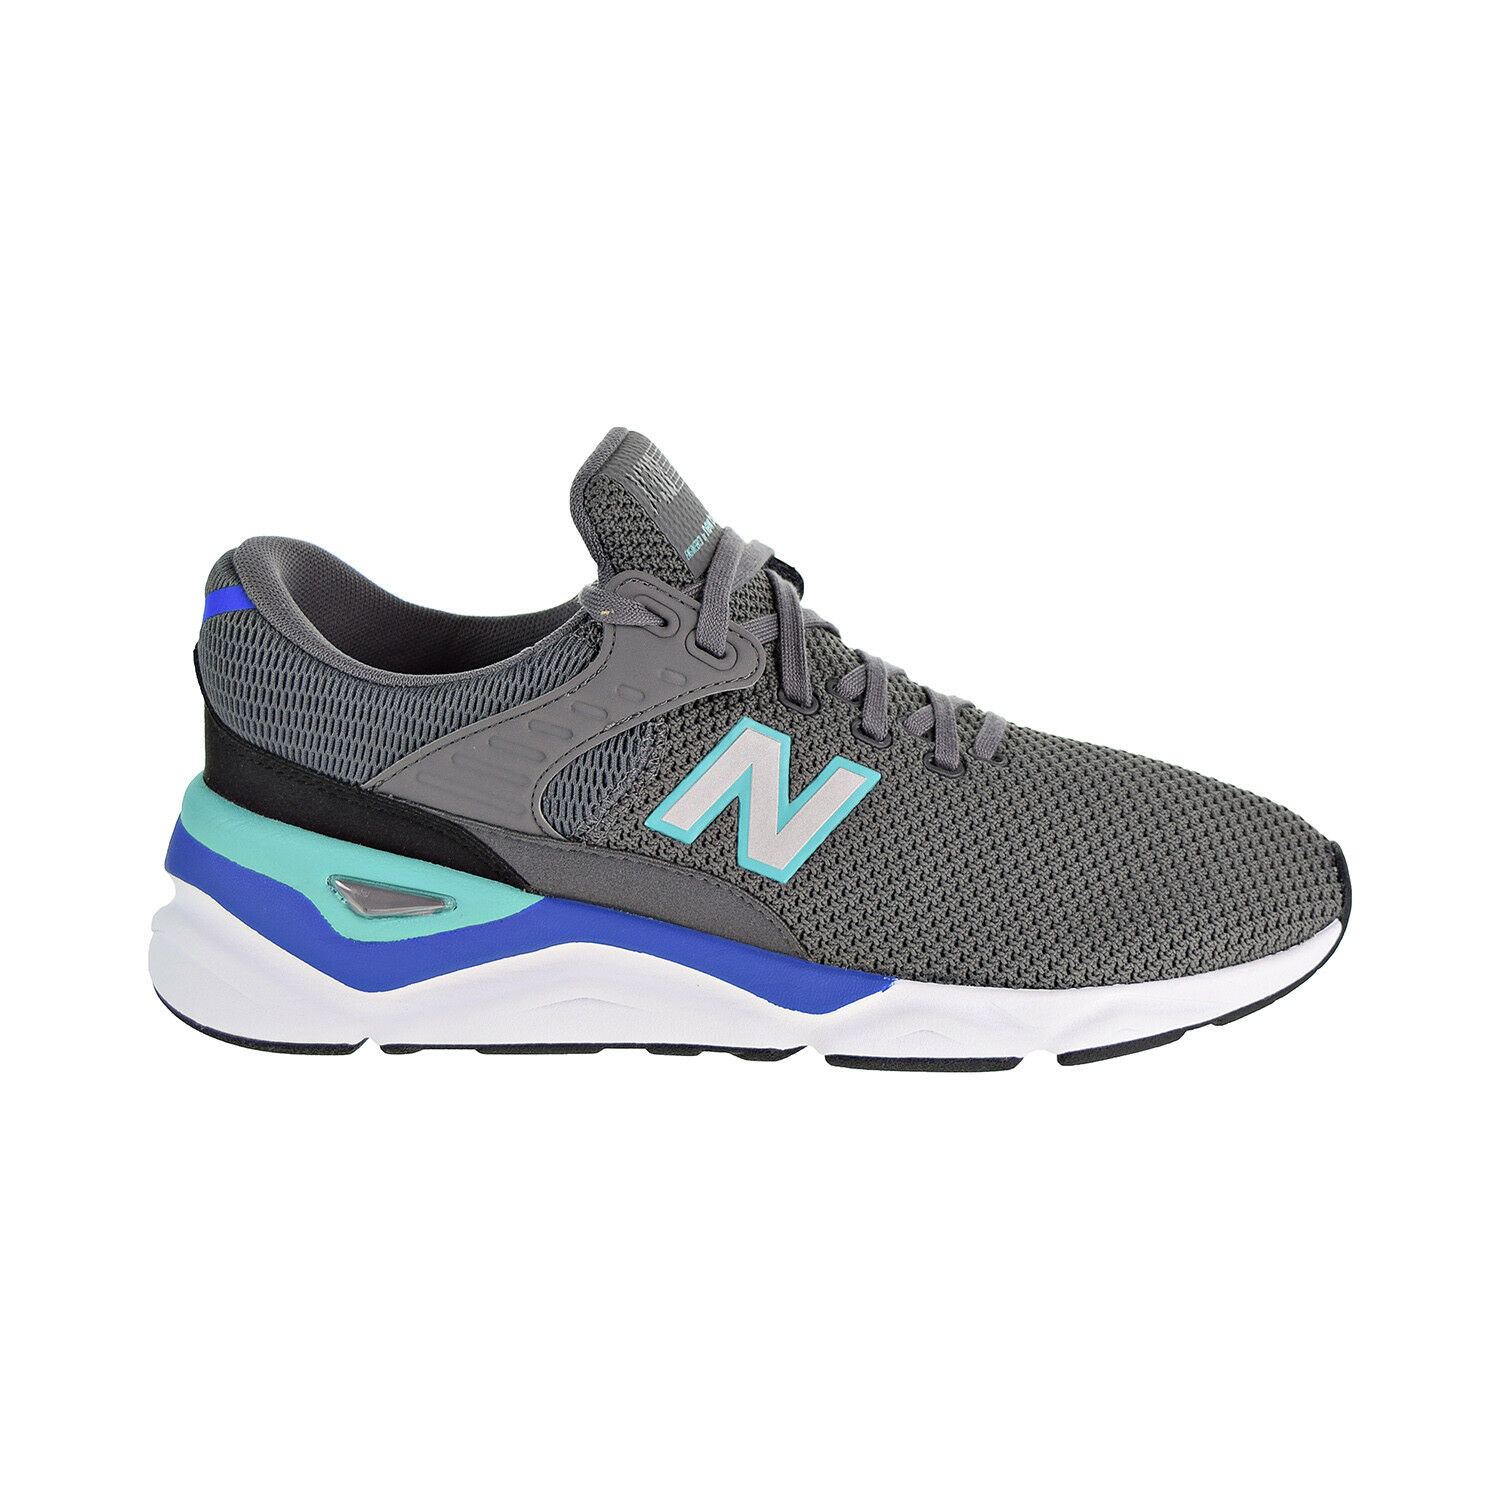 New Balance Lifestyle X-90 Men's shoes Grey bluee Green MSX90-CRD